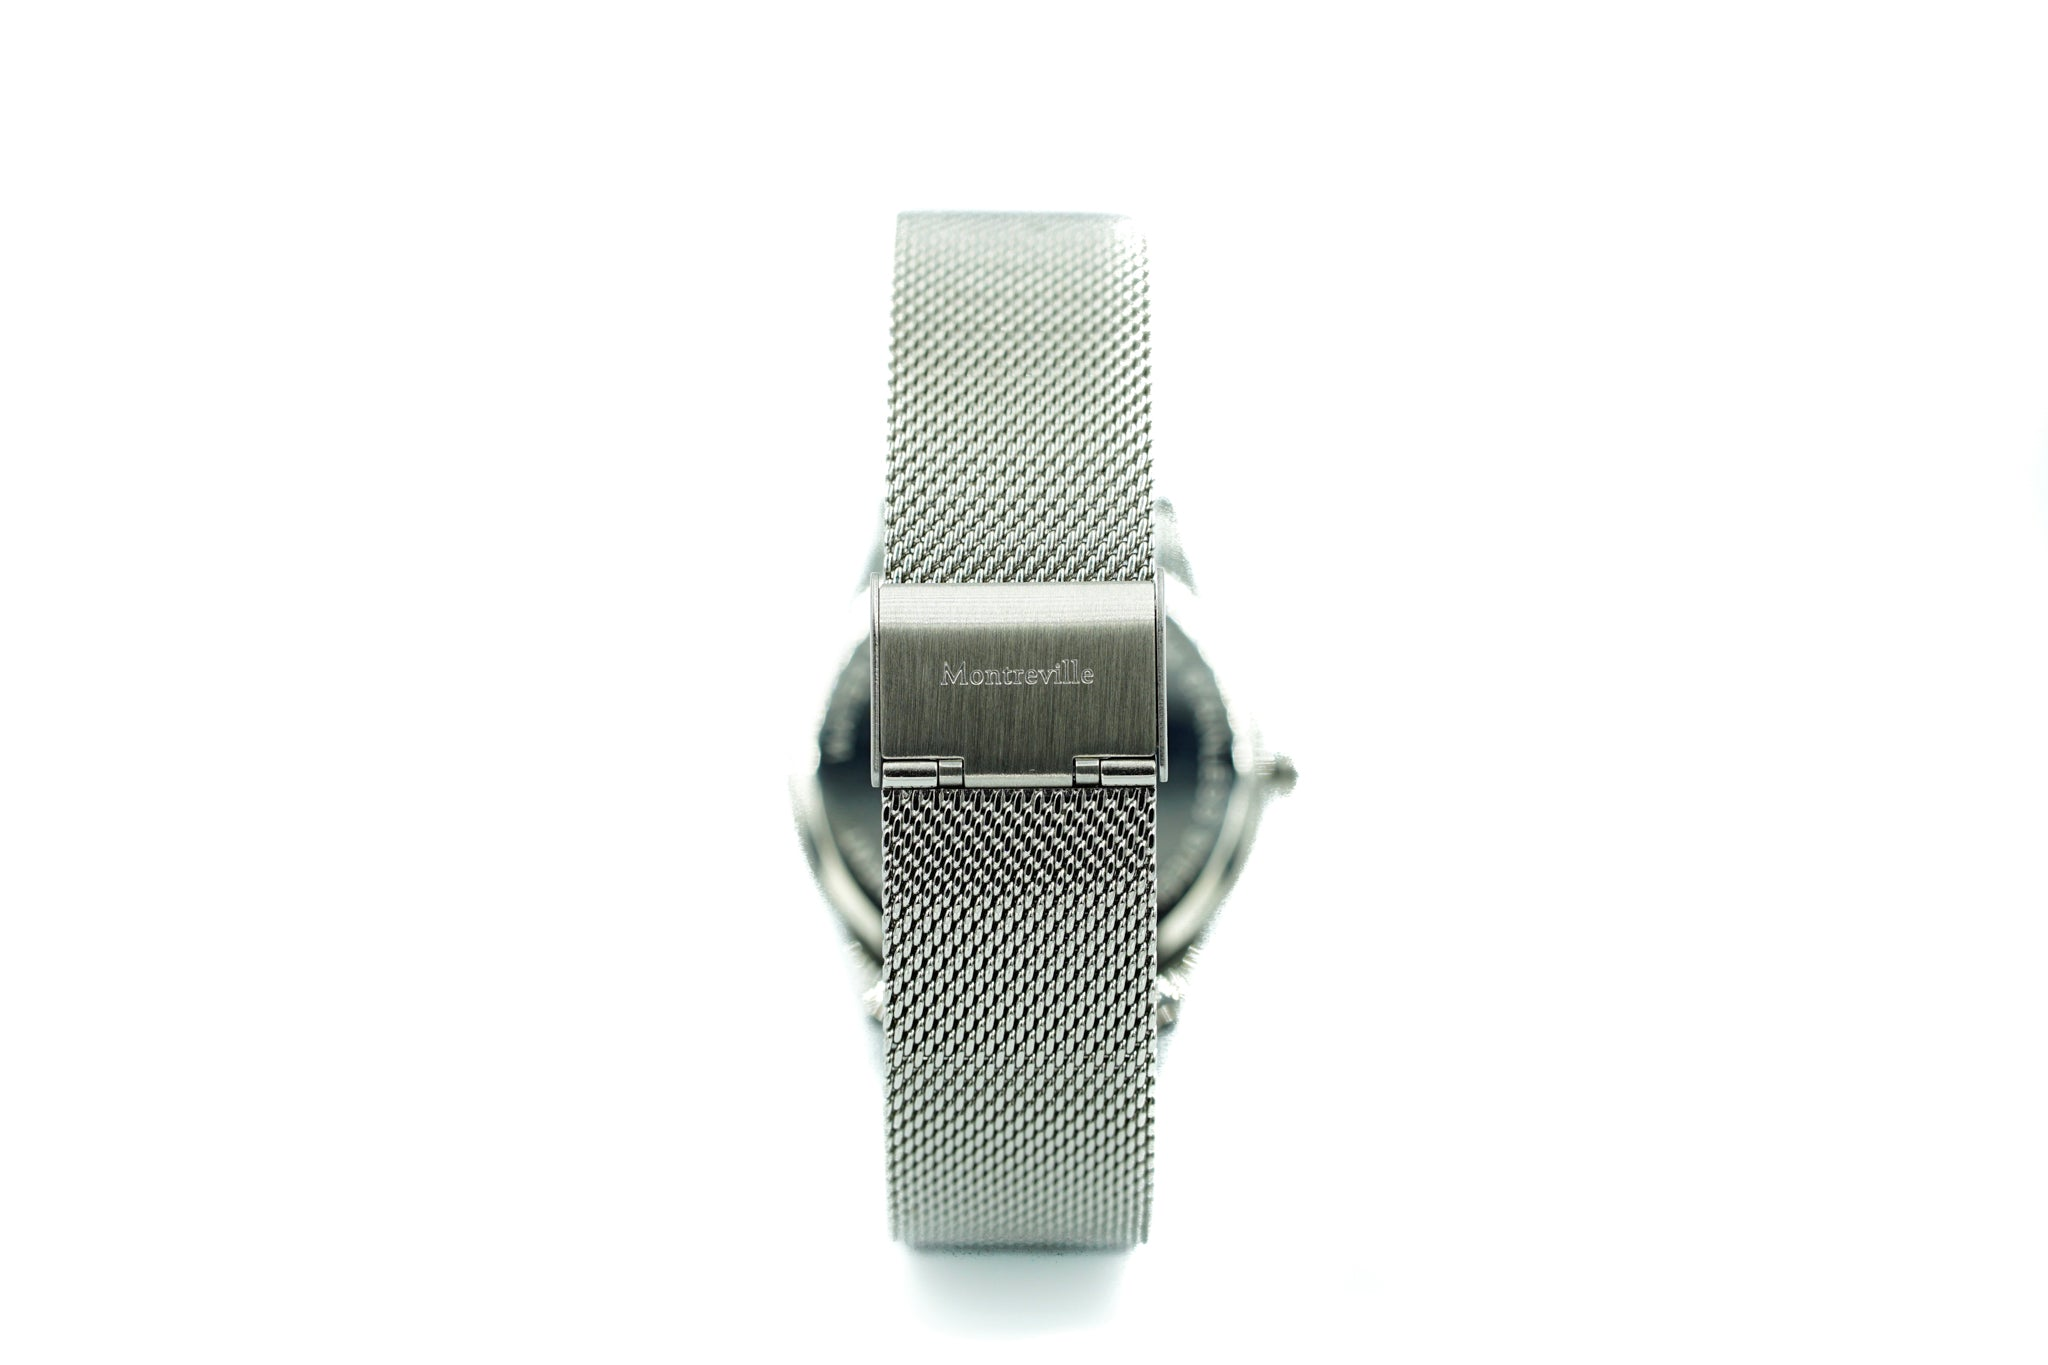 Silver watch called Tokyo from the brand Montreville, seen from the back. This is an image of the watch with a white background. The timepiece has an elegant design with a mesh strap in silver.